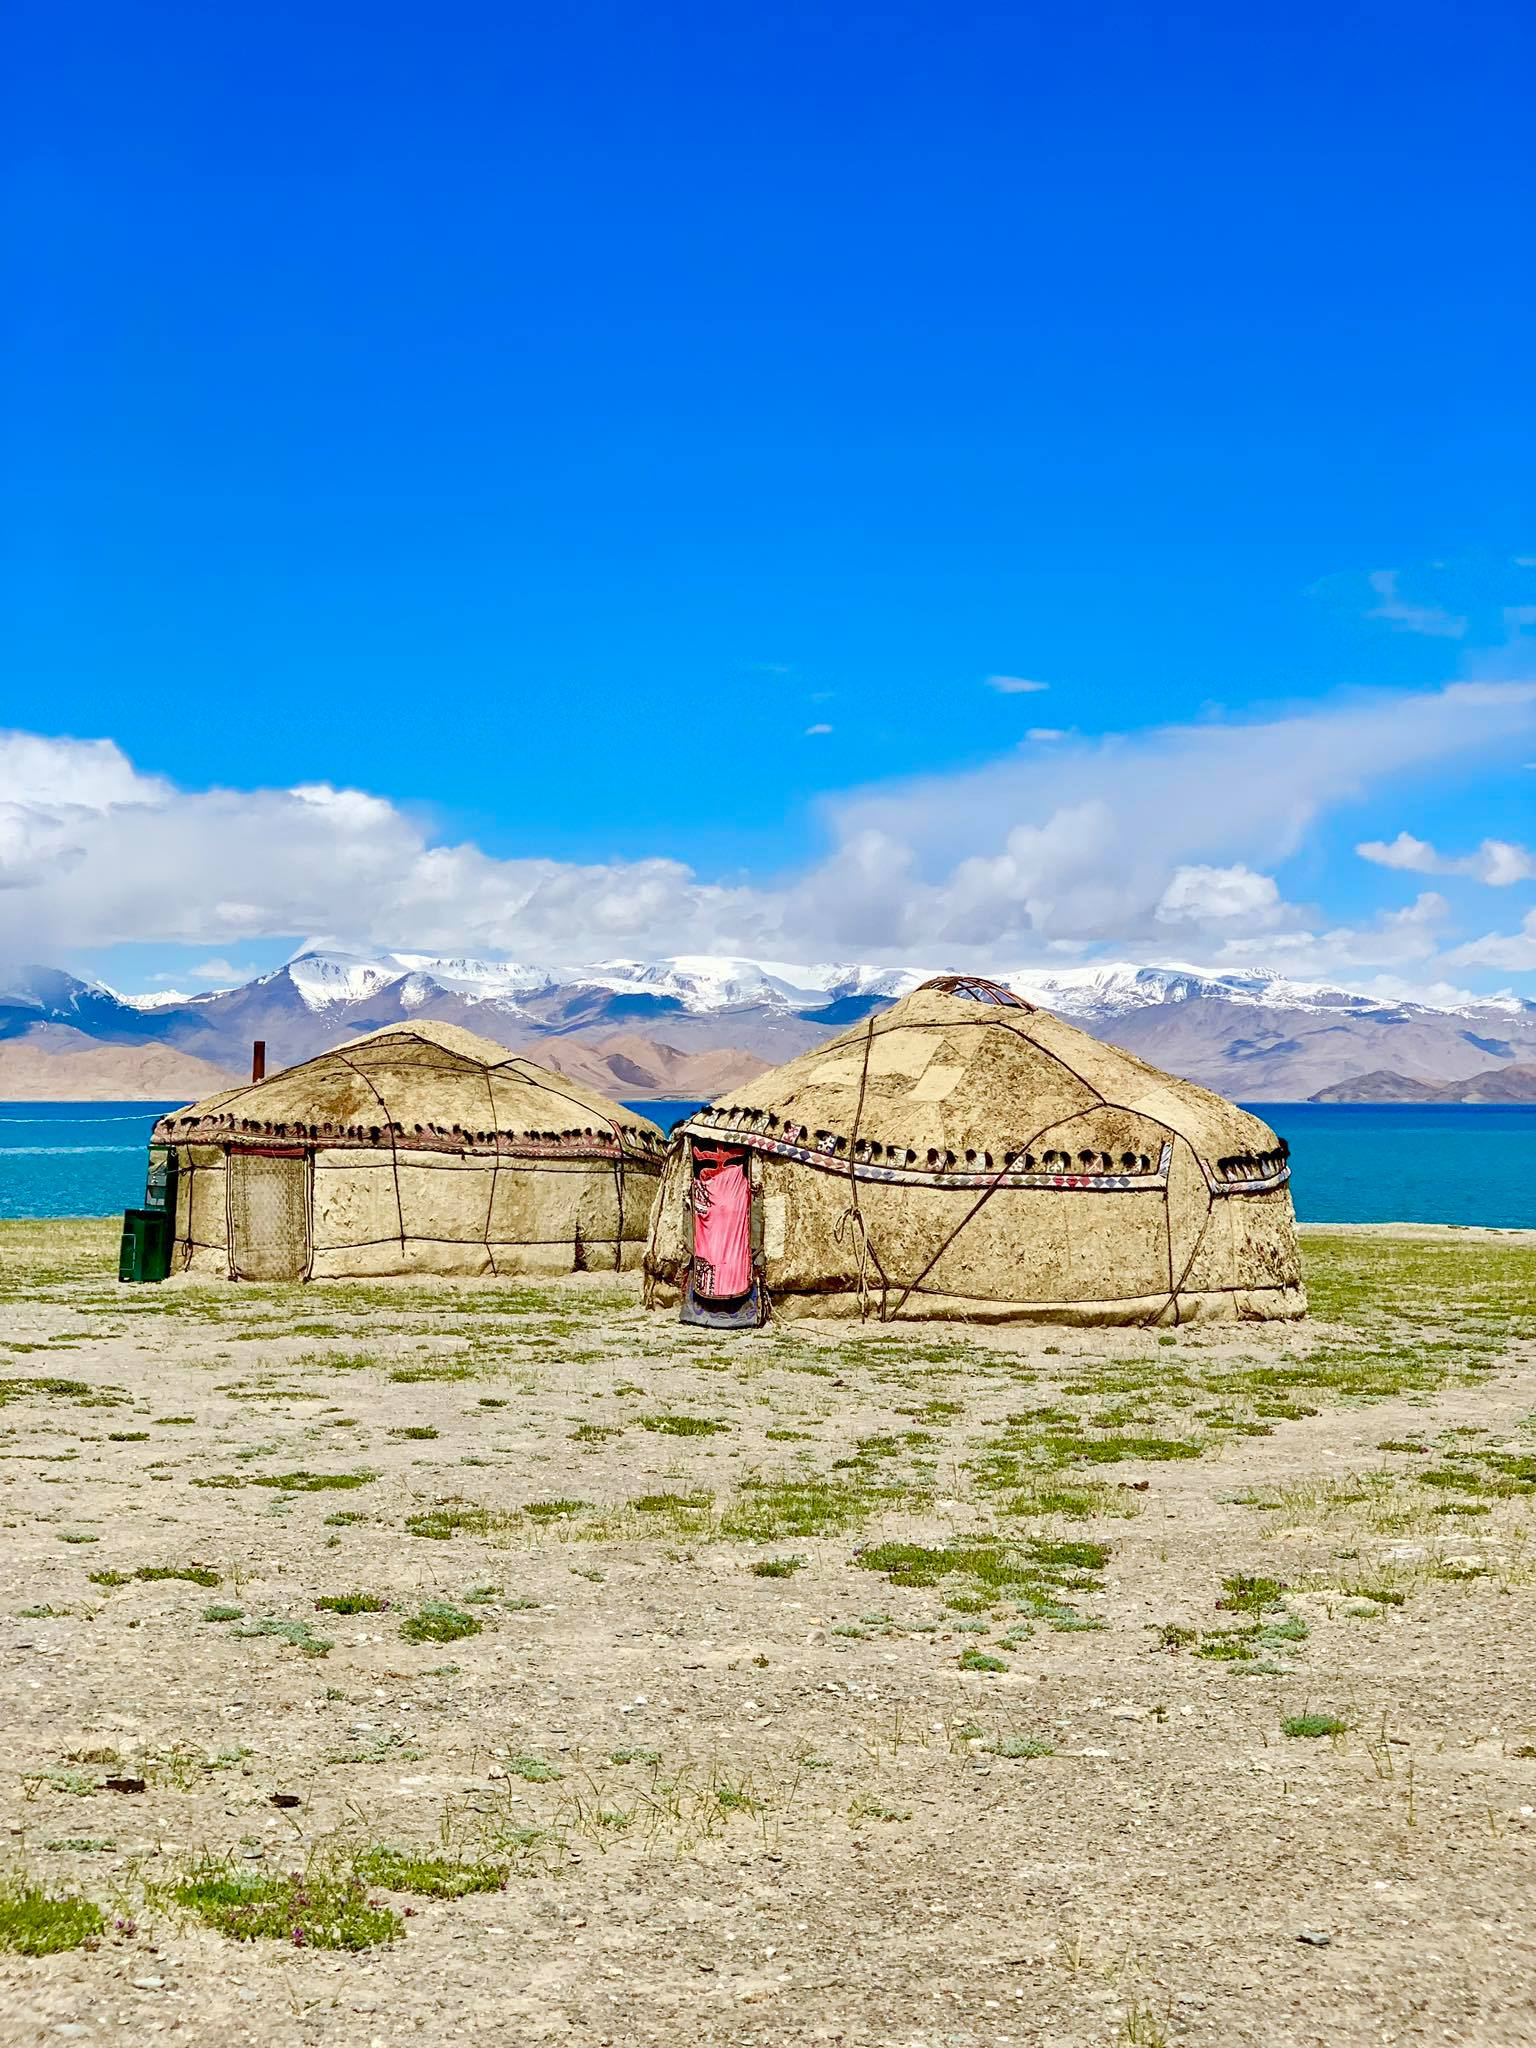 Kach Solo Travels in 2019 Last 8 days of Pamir Highway roadtrip with Paramount Journey5.jpg